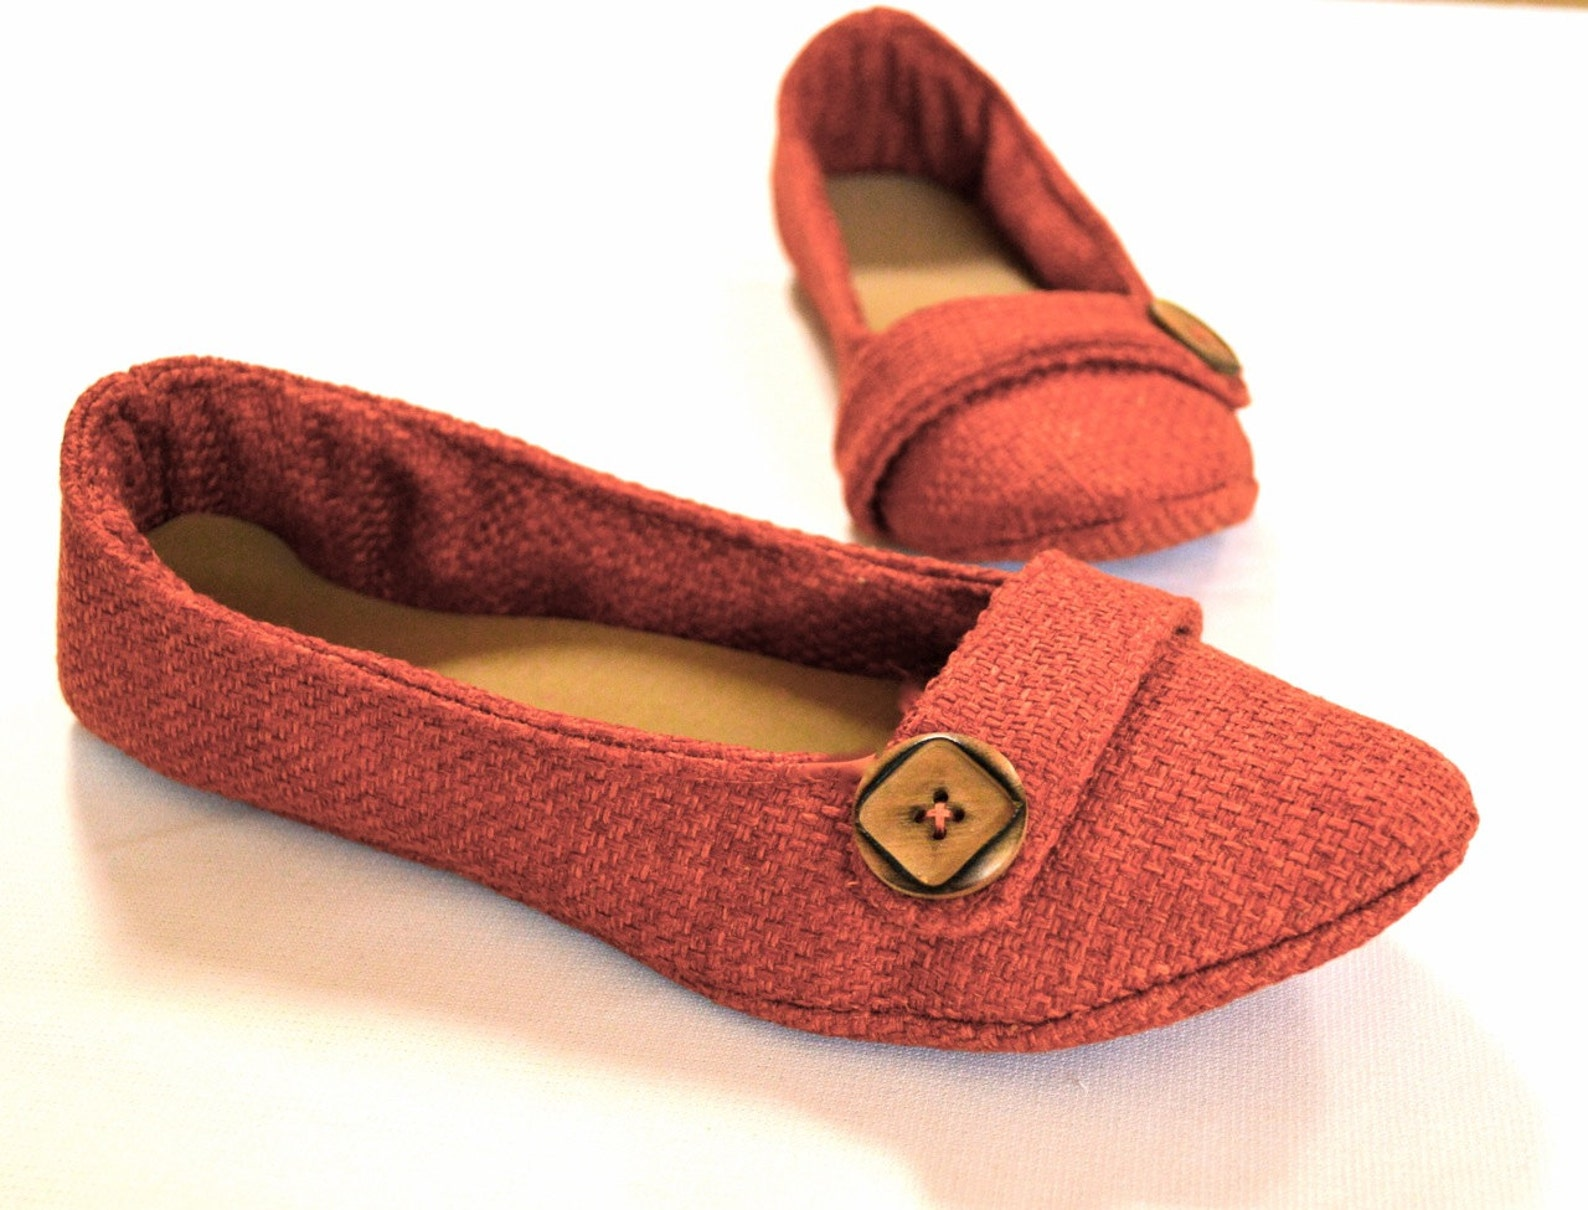 women's ballet flat sewing pattern digital download in 5 different styles - includes sizes women's size 4 - 14 1/2